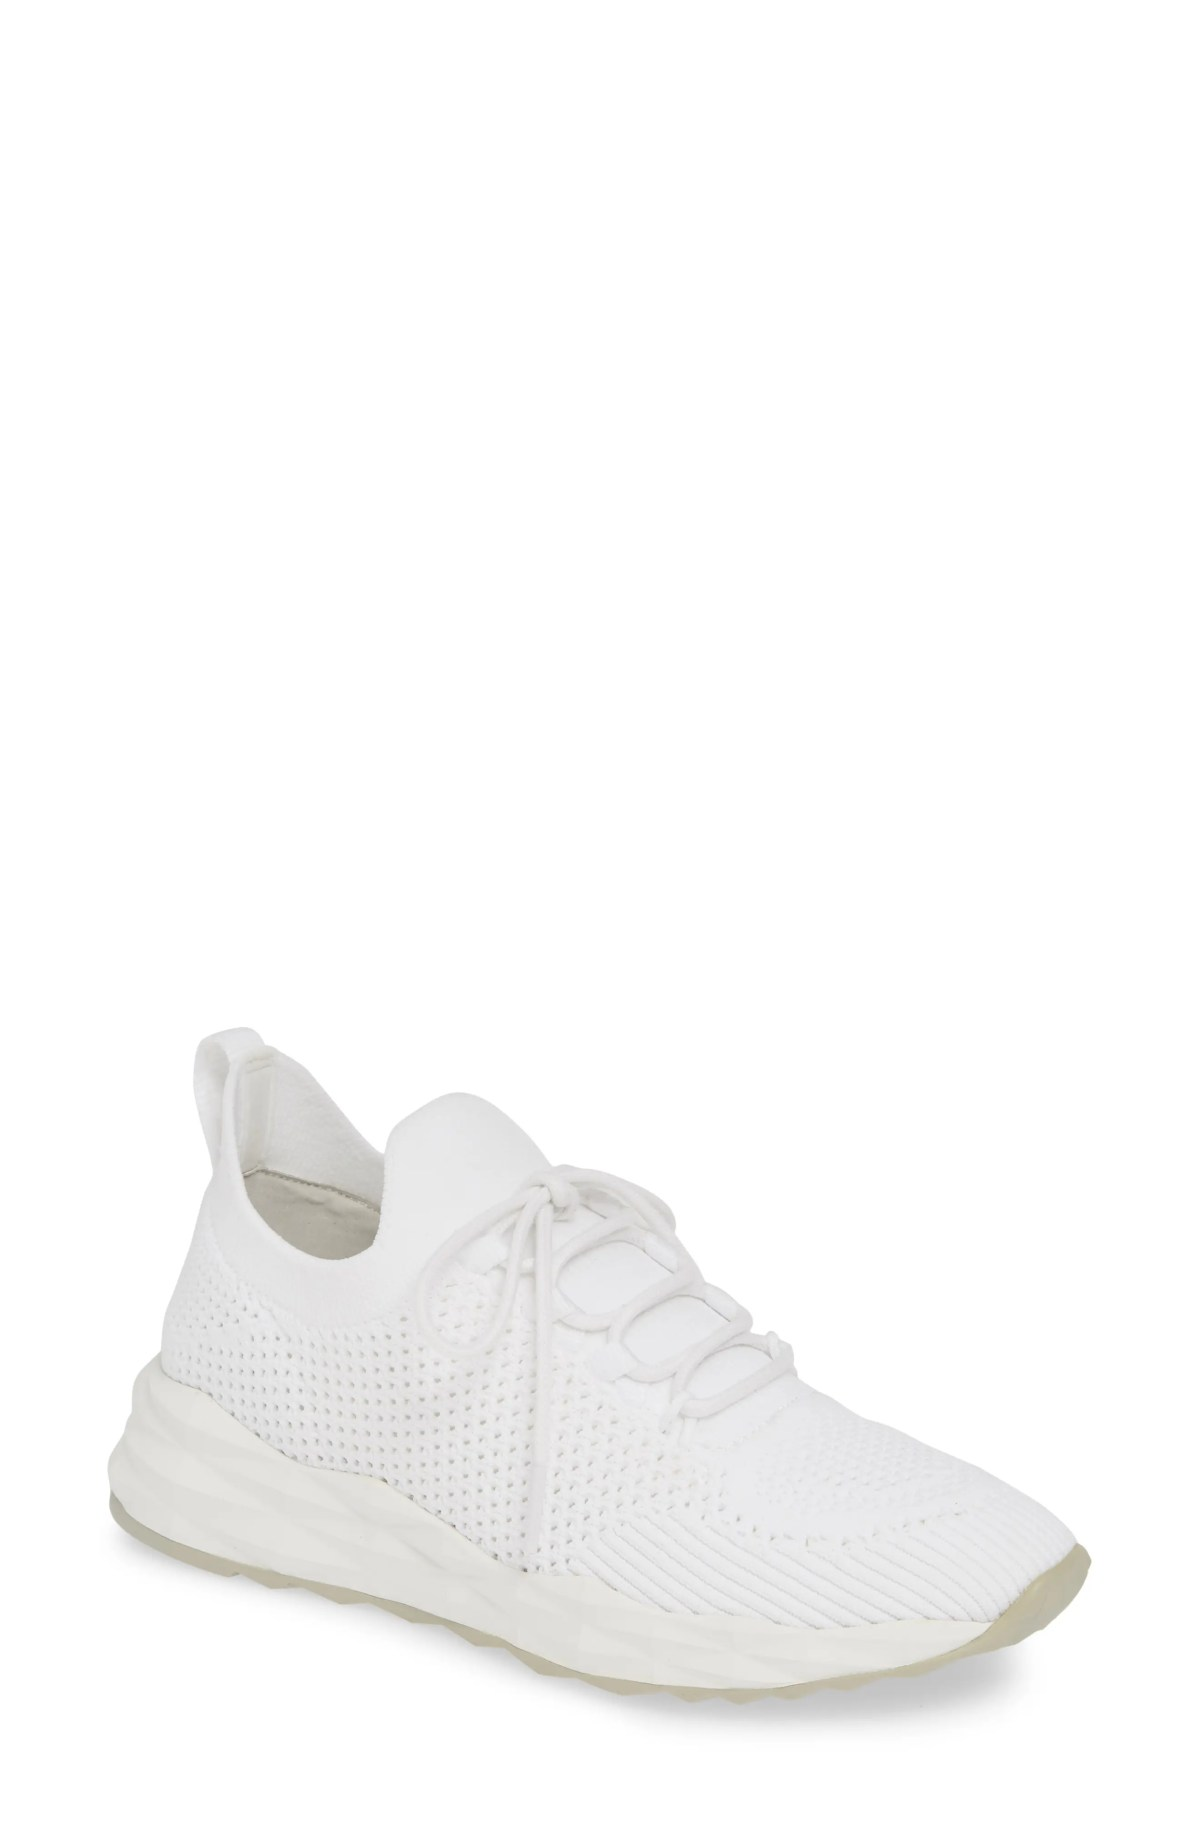 ASH Knit Skate Sneaker, Main, color, WHITE/ OFF WHITE